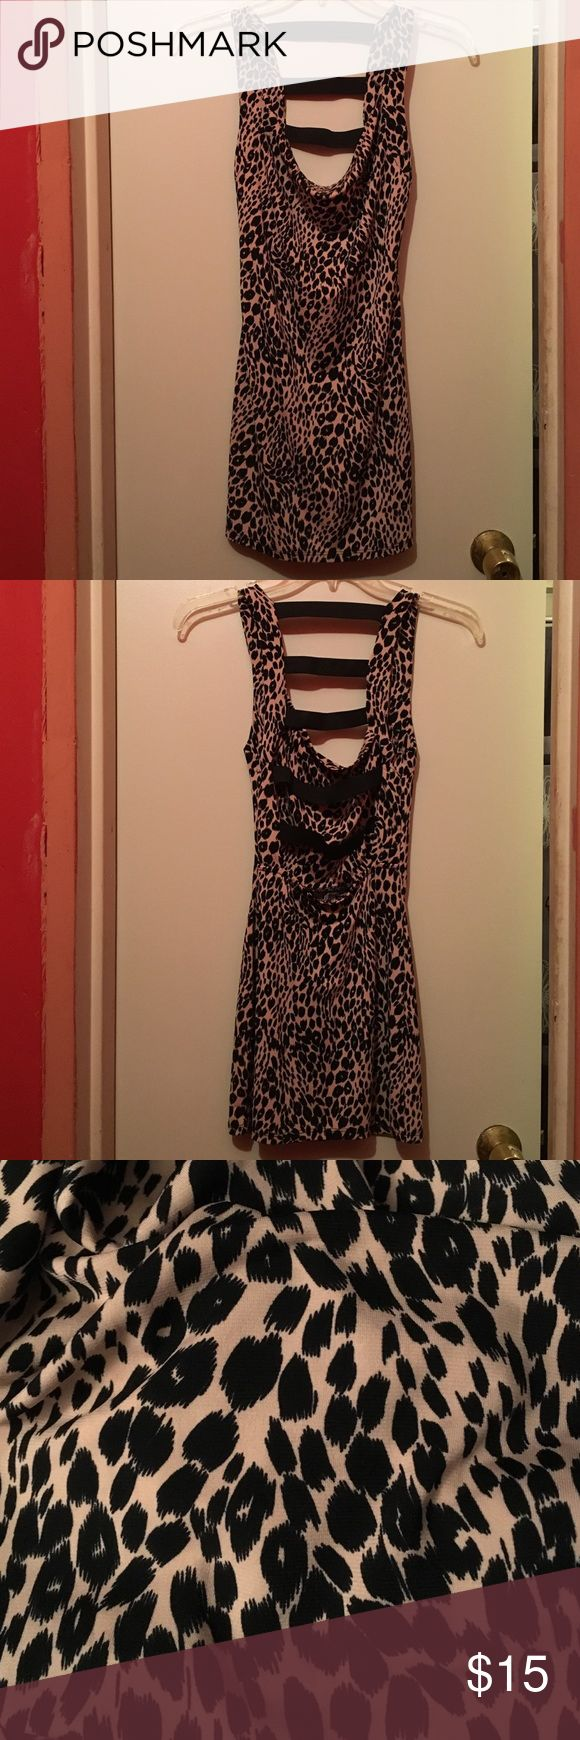 🚨 Final🚨Charlotte Russe Cheetah Print Dress Cheetah print party dress from Charlotte Russe is the perfect dress for a night out. Dress has an open back with black elastic straps going down the back as seen in the picture. Made of 96% Polyester and 4% Spandex.✨This item is also listed on Mercari under the name Always_Stylish✨ Charlotte Russe Dresses Mini